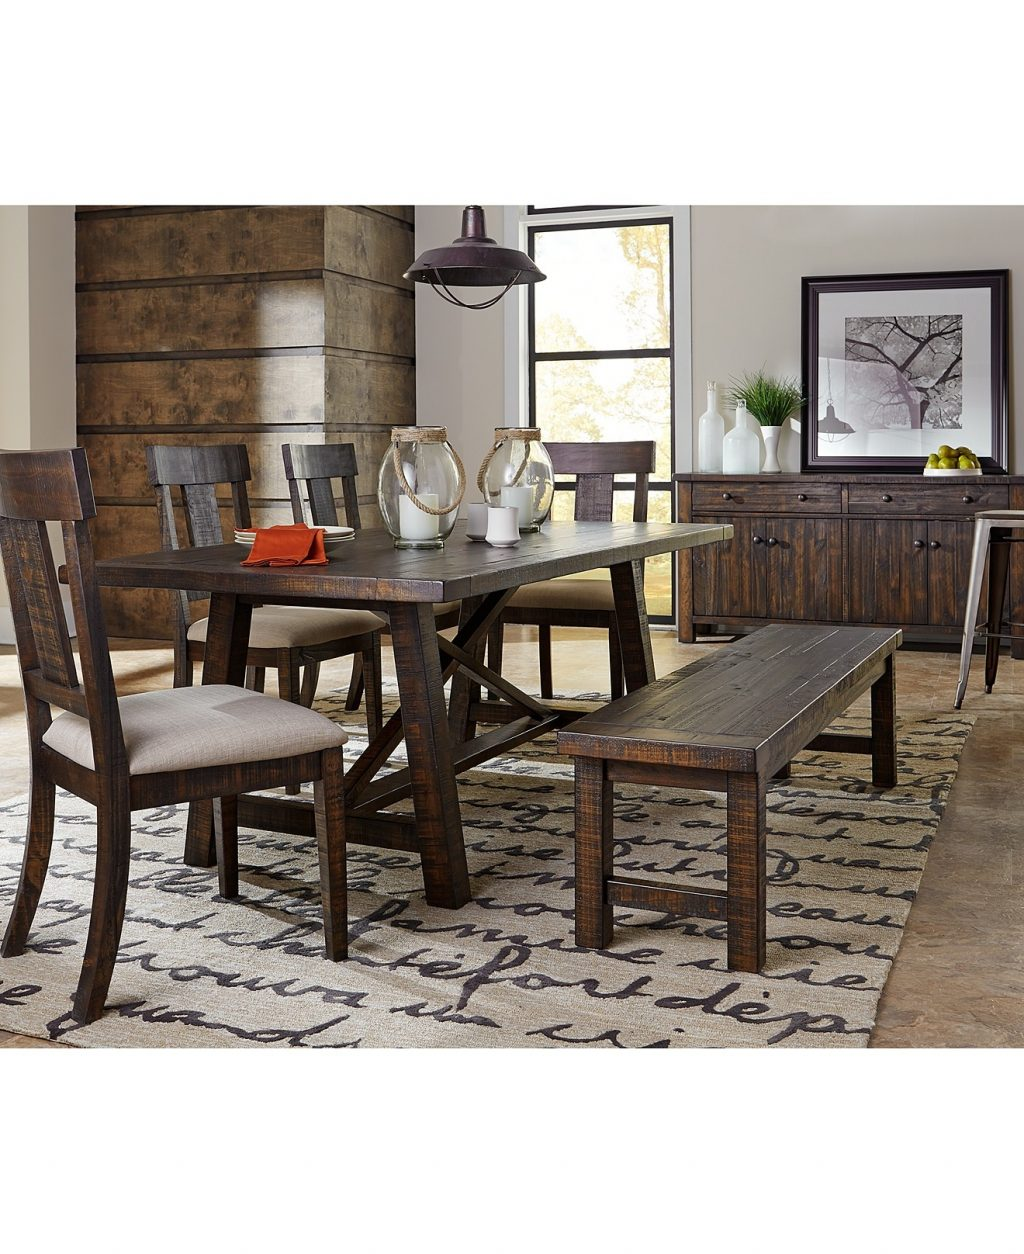 Dining Room Macys Dining Table Dining Table And Chairs With Bench